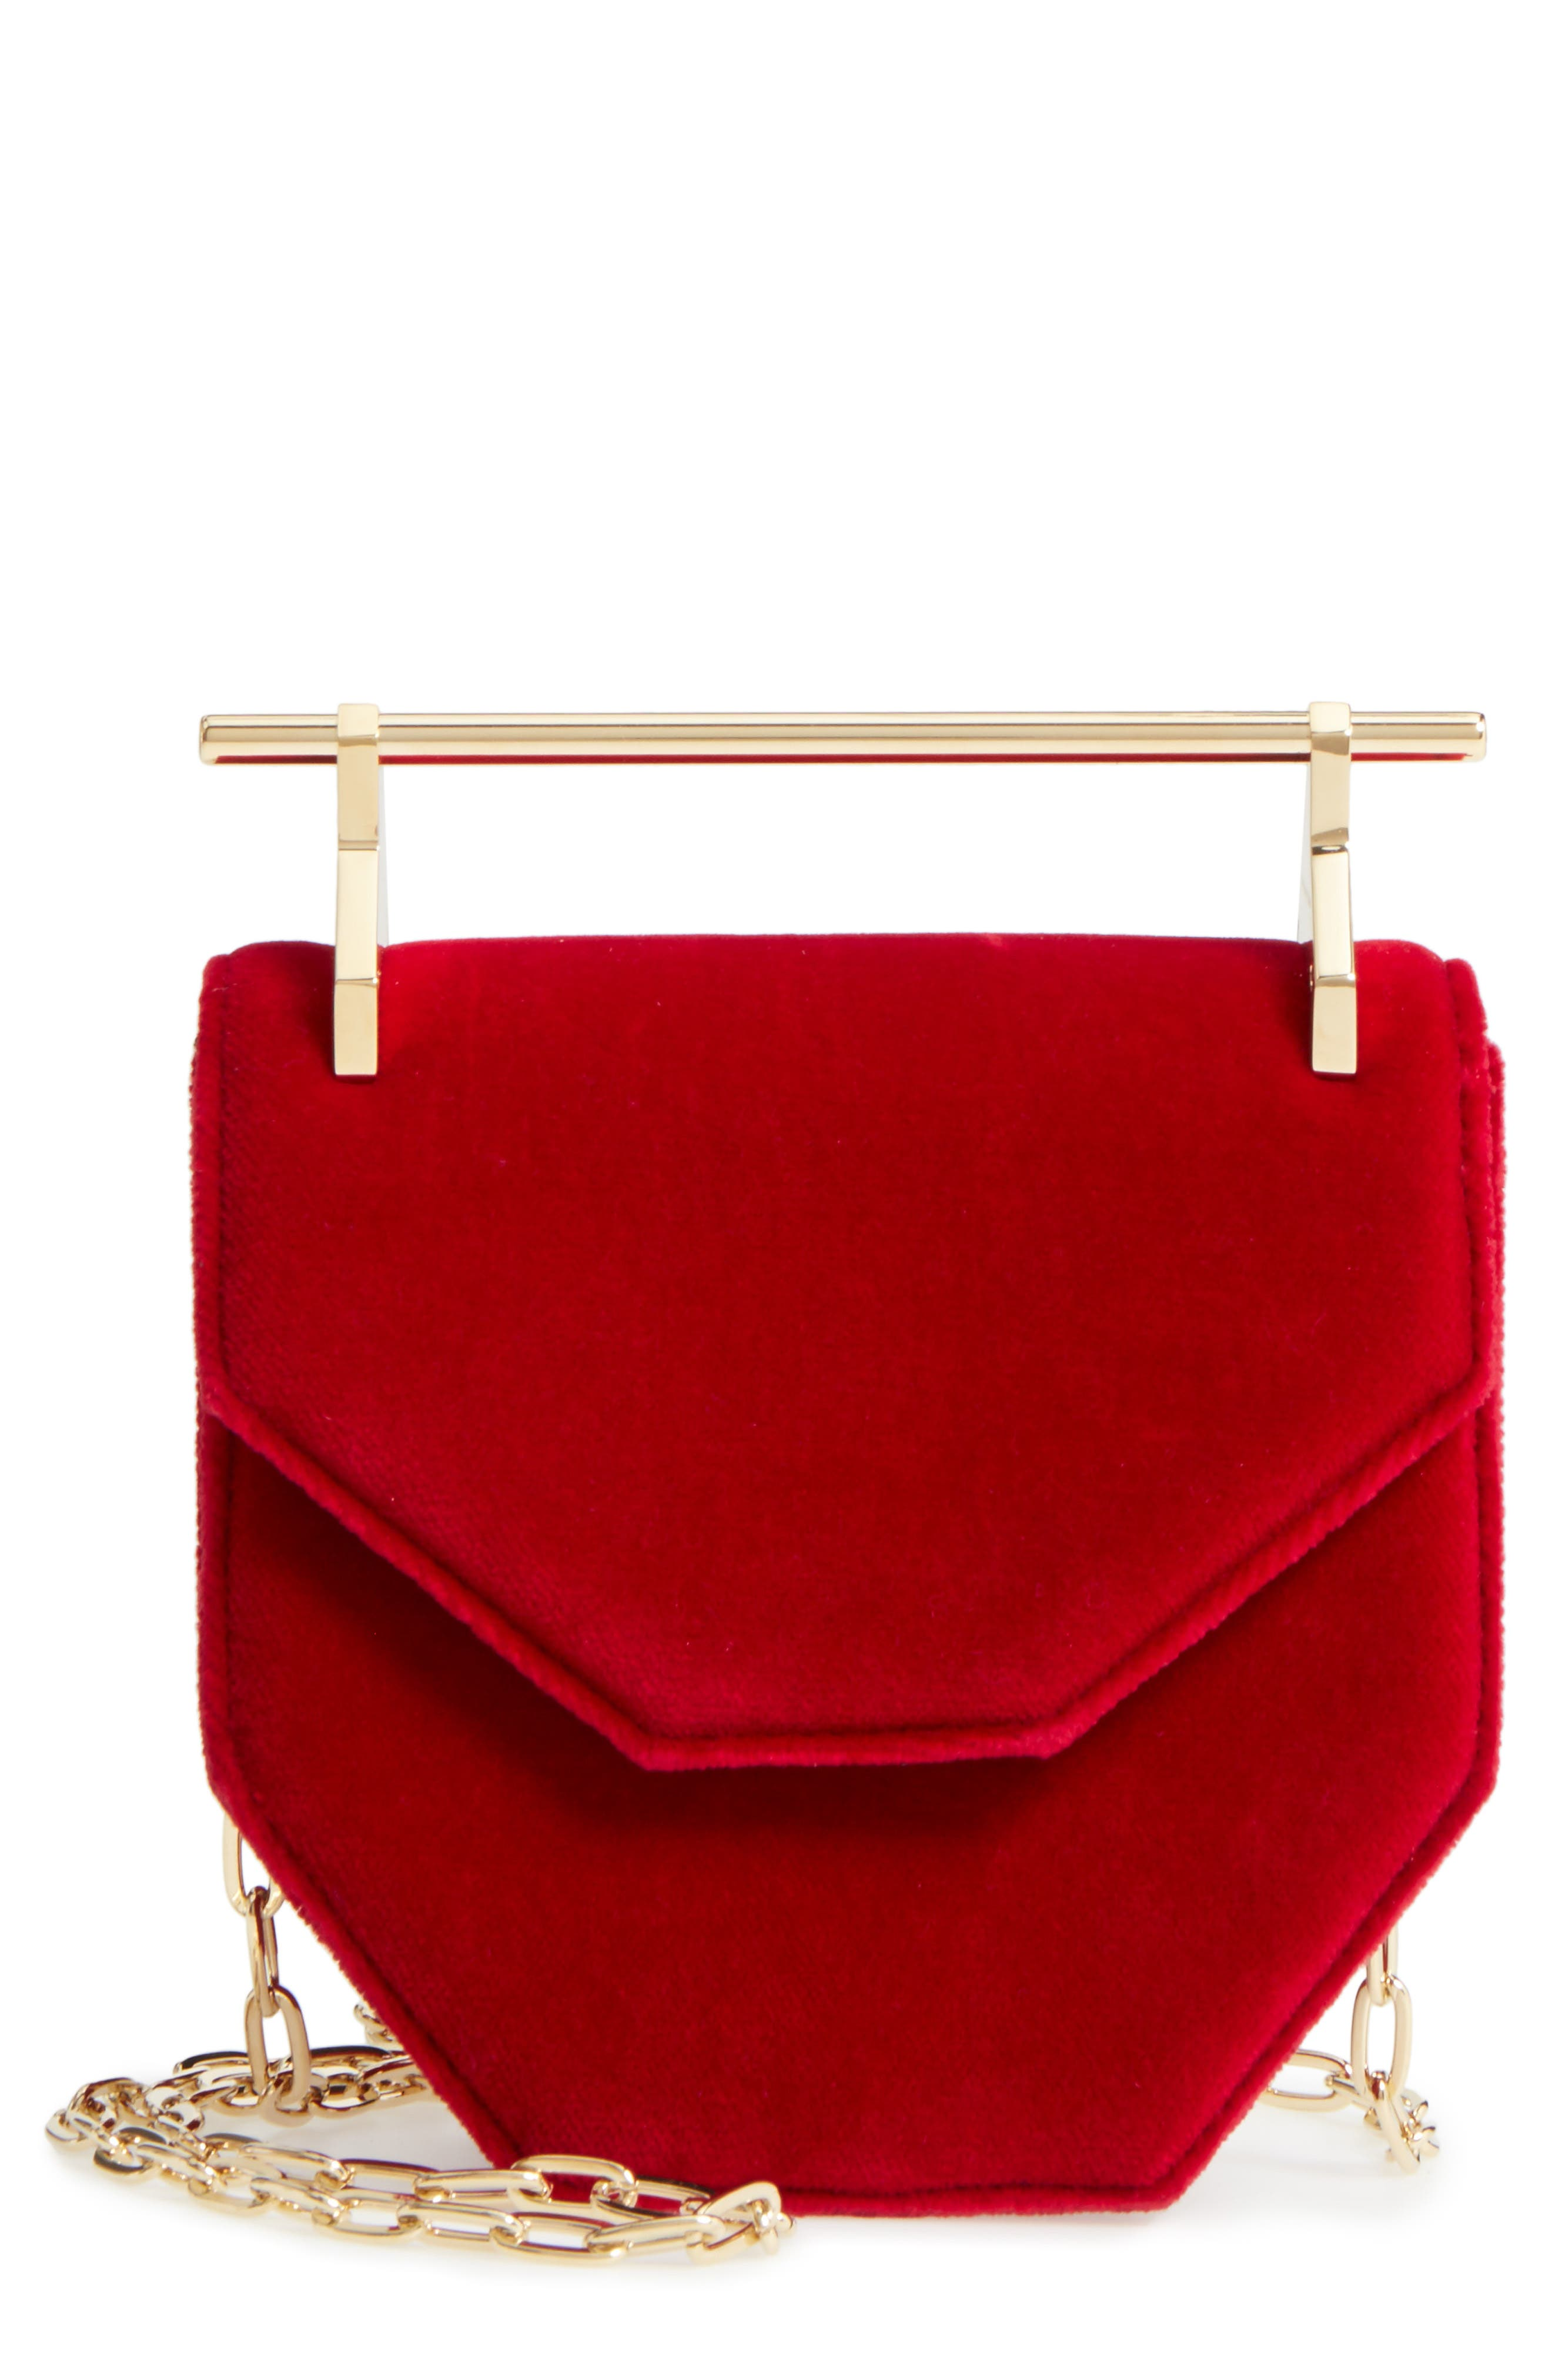 Main Image - M2Malletier Mini Amor Fati Velvet Shoulder Bag